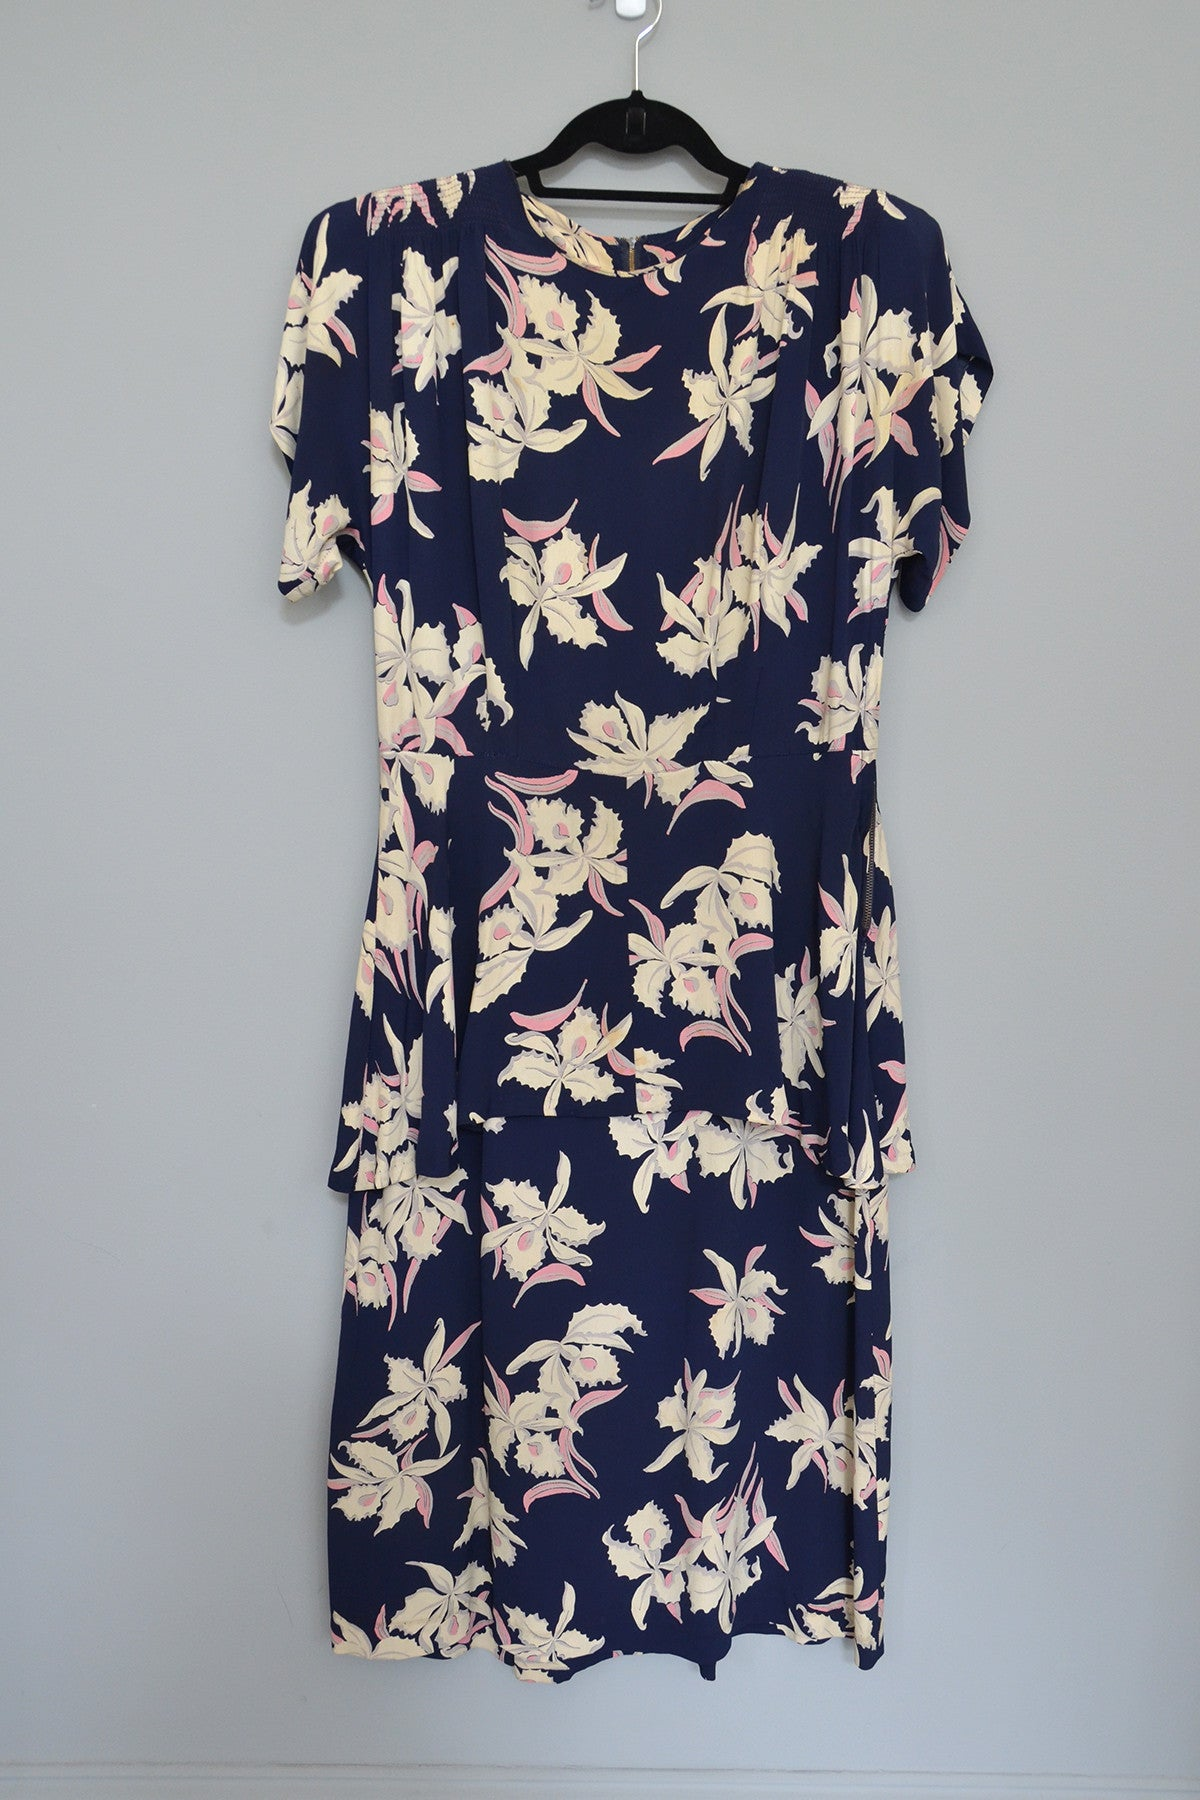 1940s Navy Blue Orchid Print Dress As-Is